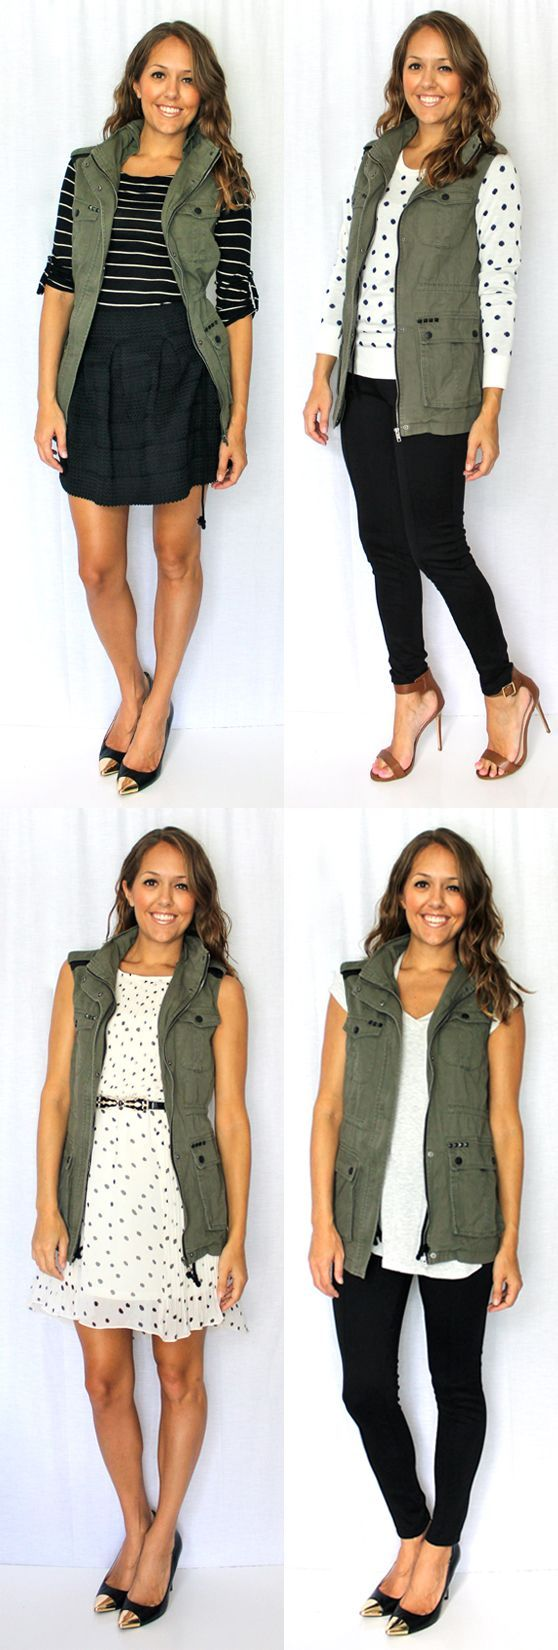 how to wear it well: 15 Ways to Wear a Military/Utility Vest